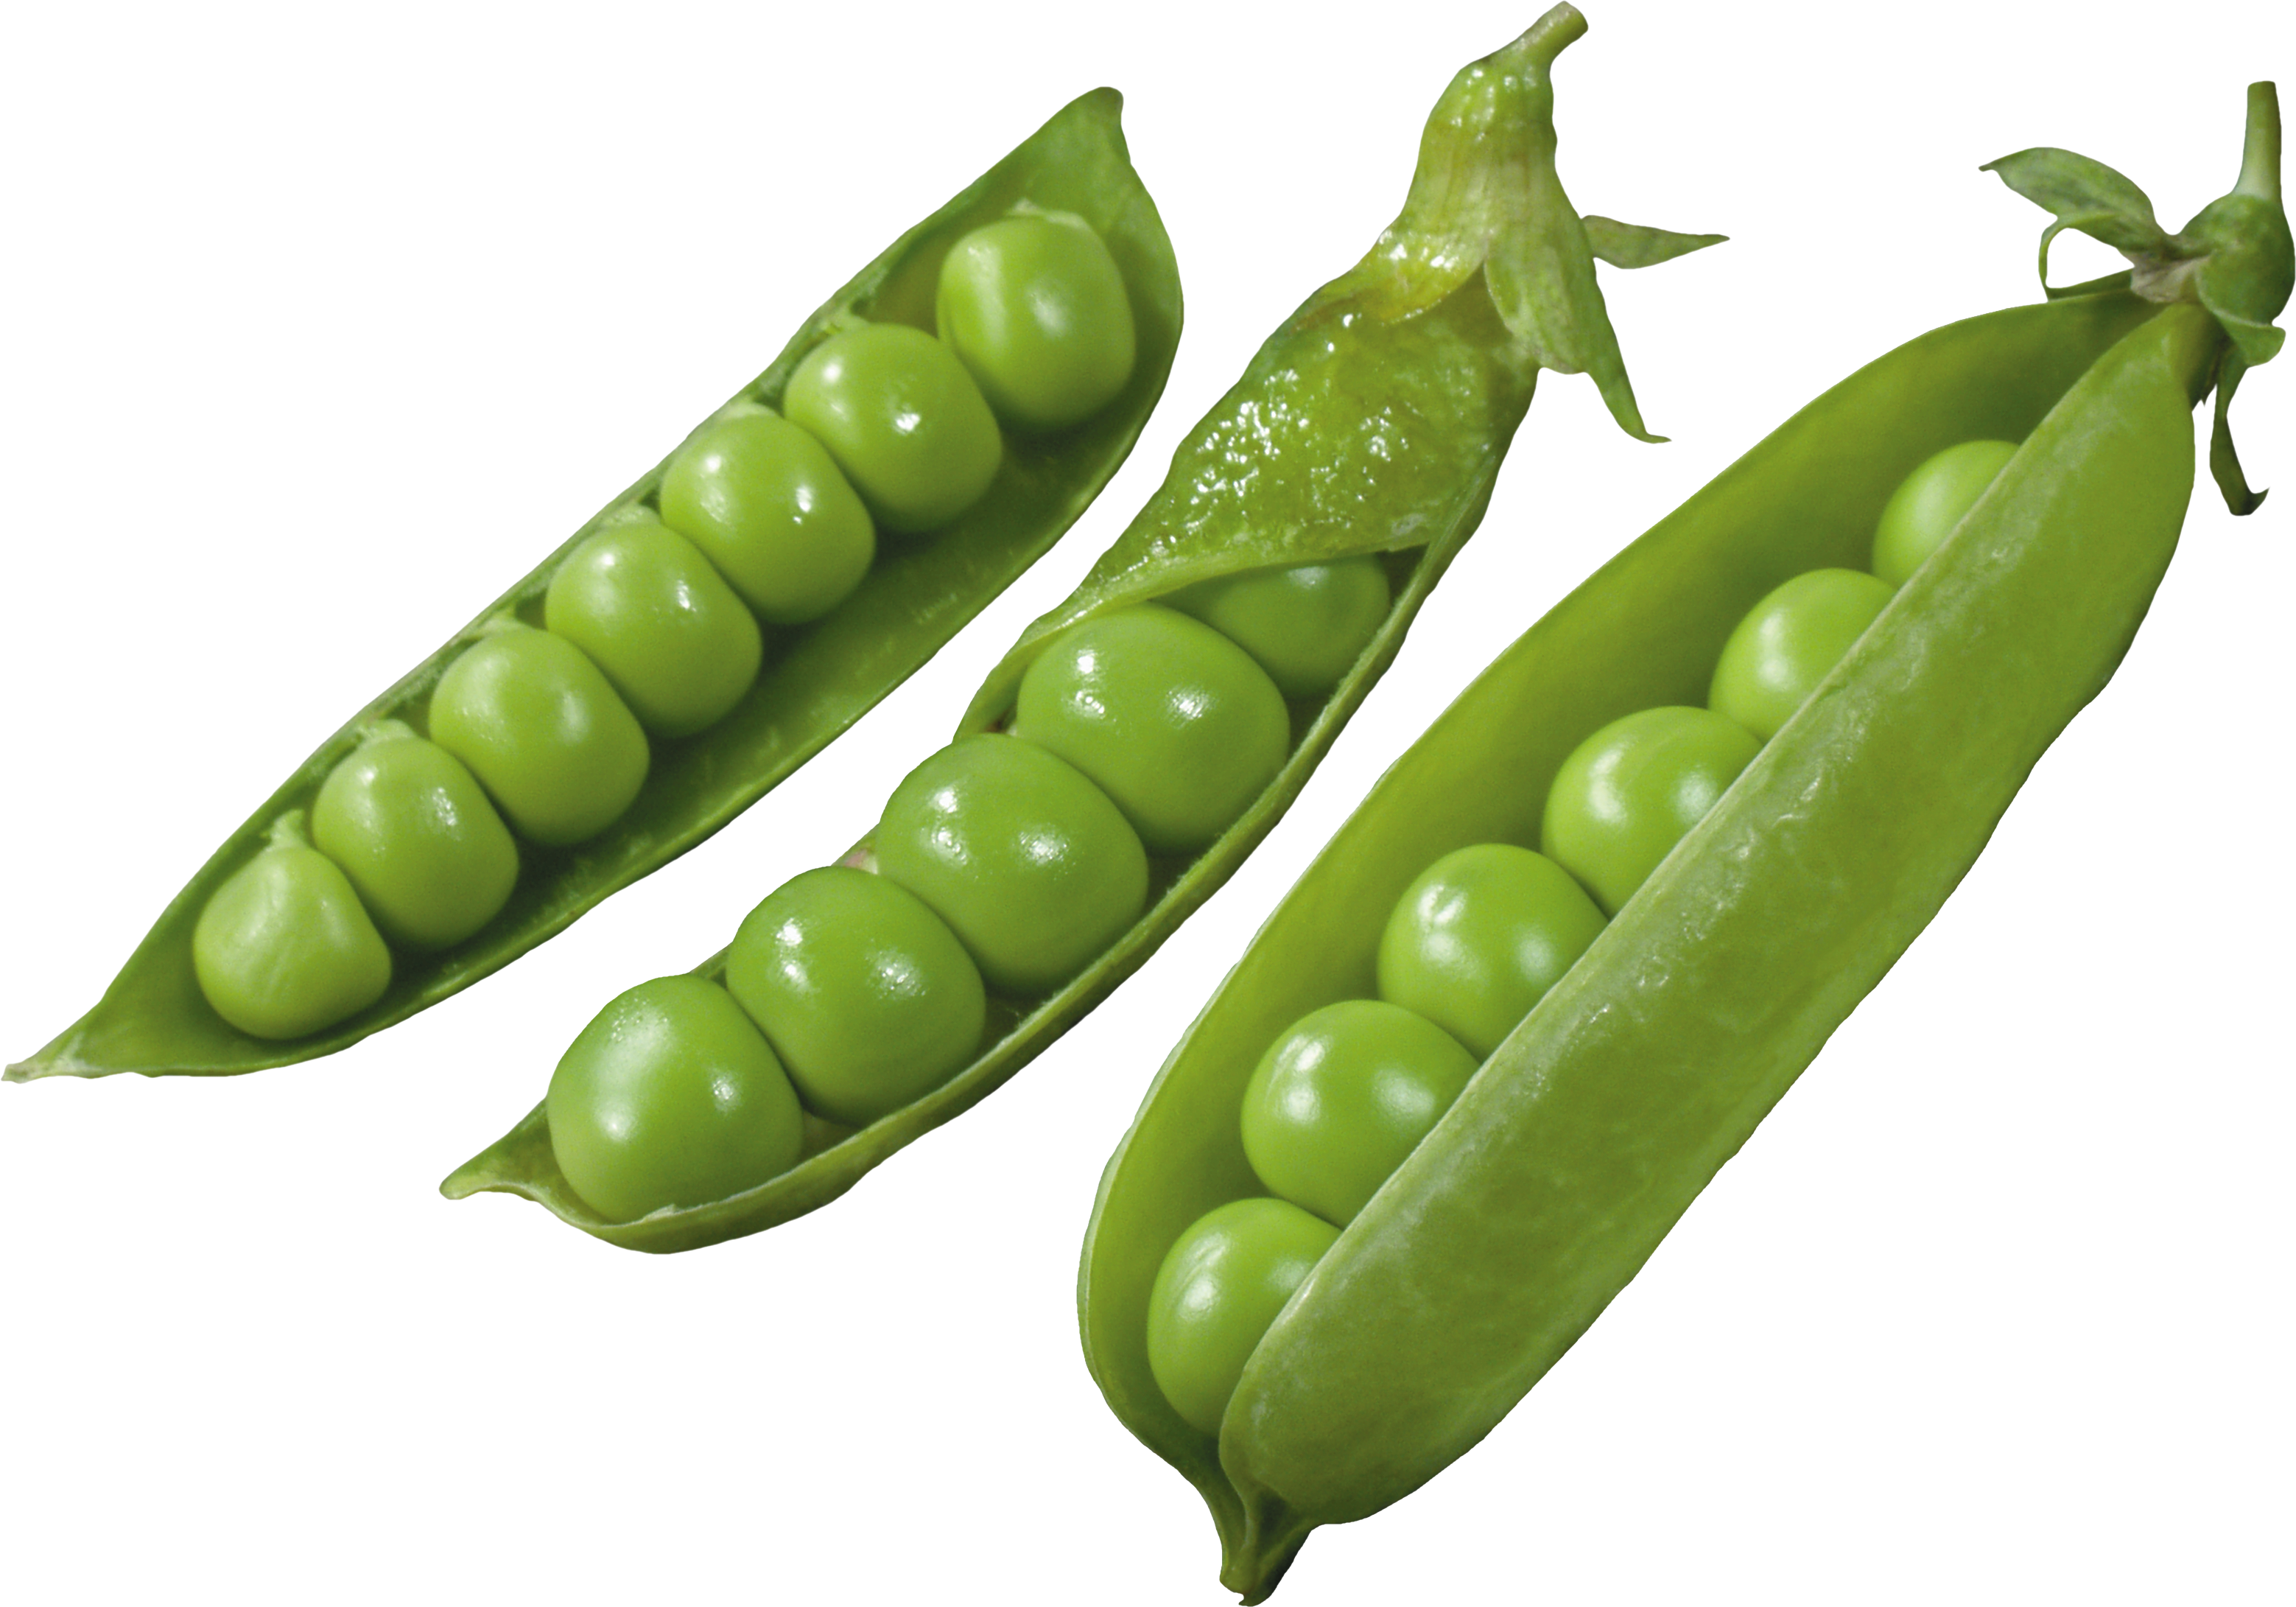 Three Pods with Peas